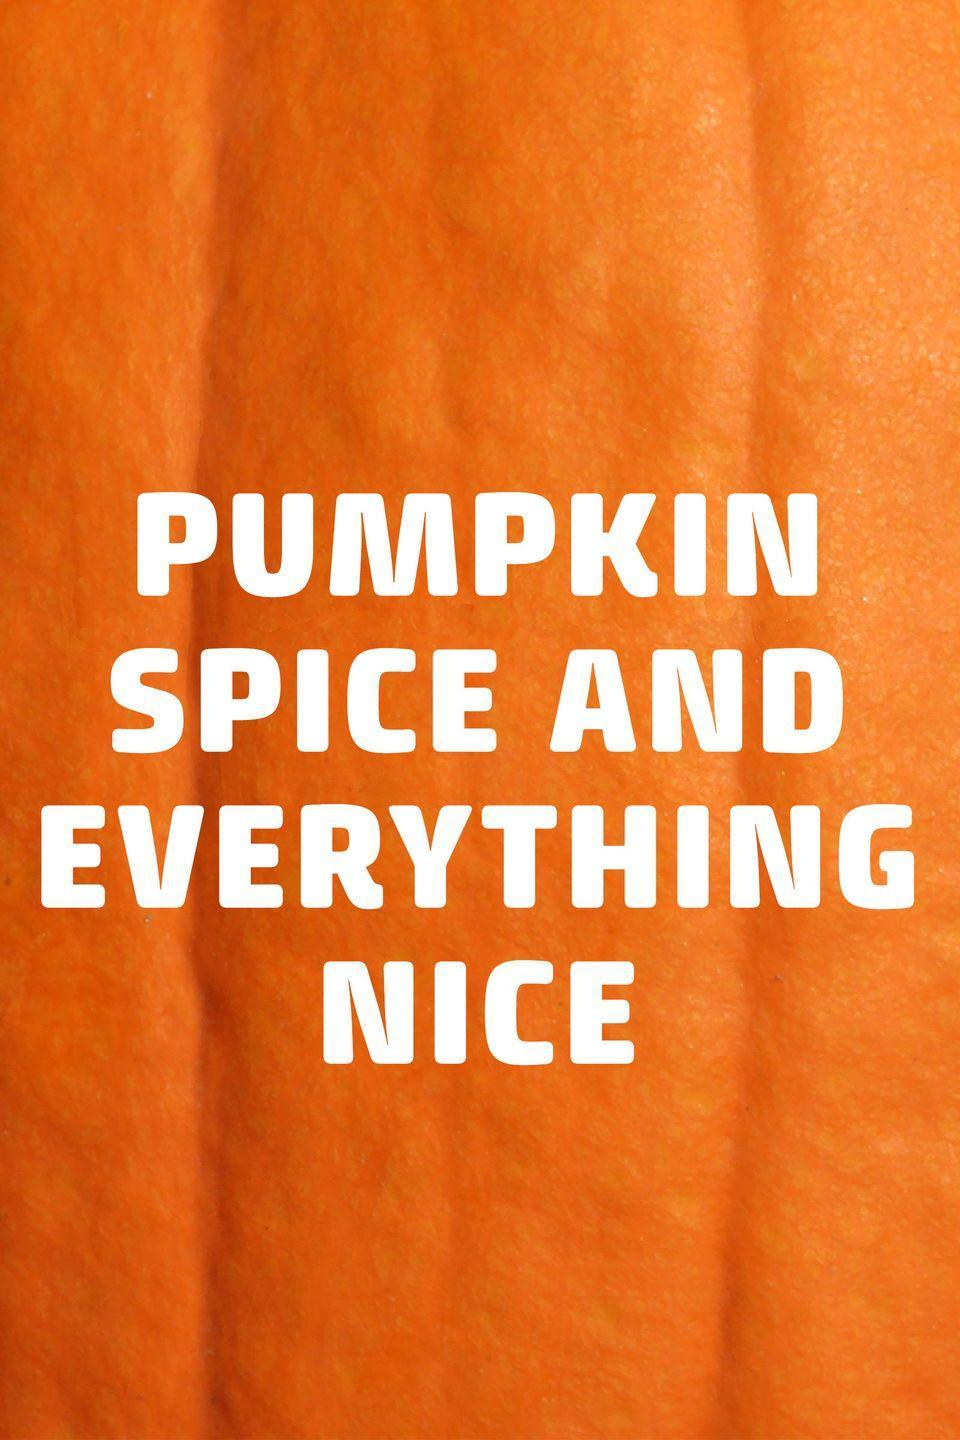 """<p>Love <a href=""""https://www.countryliving.com/food-drinks/recipes/a44773/how-to-make-pumpkin-pie-spice/"""" rel=""""nofollow noopener"""" target=""""_blank"""" data-ylk=""""slk:pumpkin spice"""" class=""""link rapid-noclick-resp"""">pumpkin spice</a> a latte? Then go for this!</p>"""